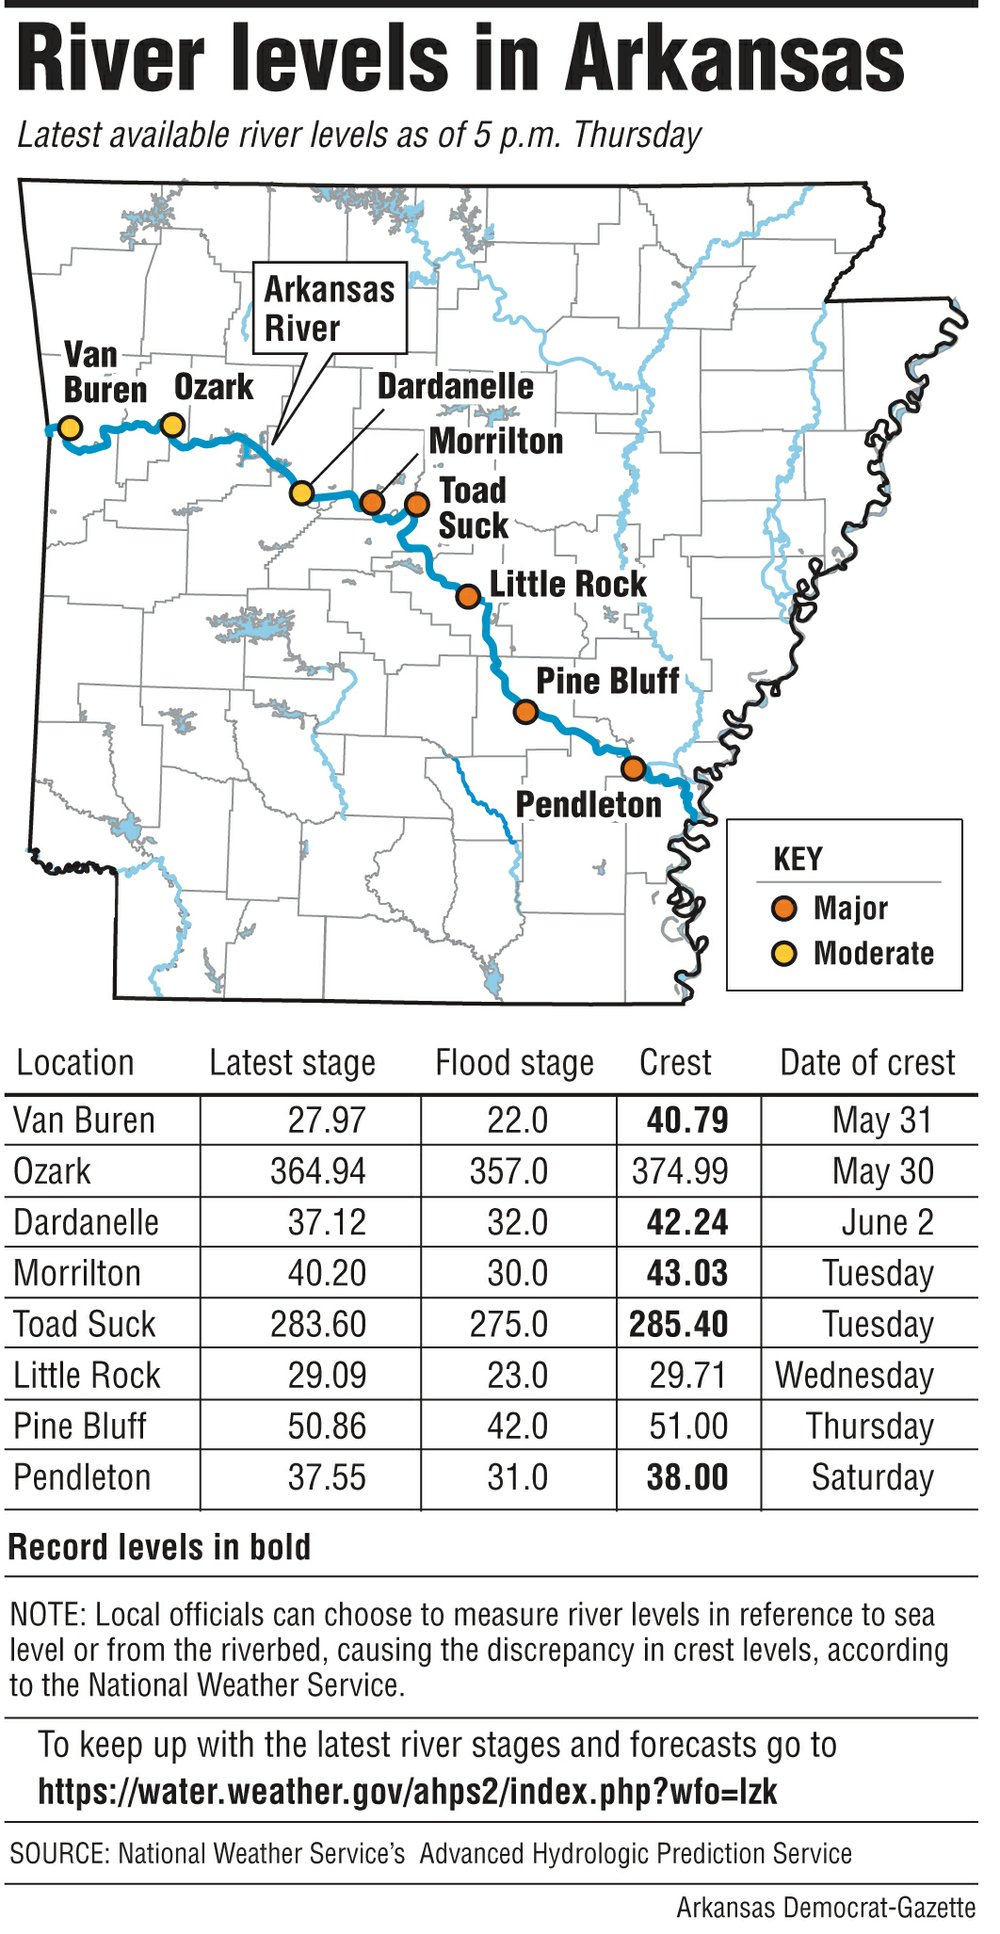 River levels in Arkansas